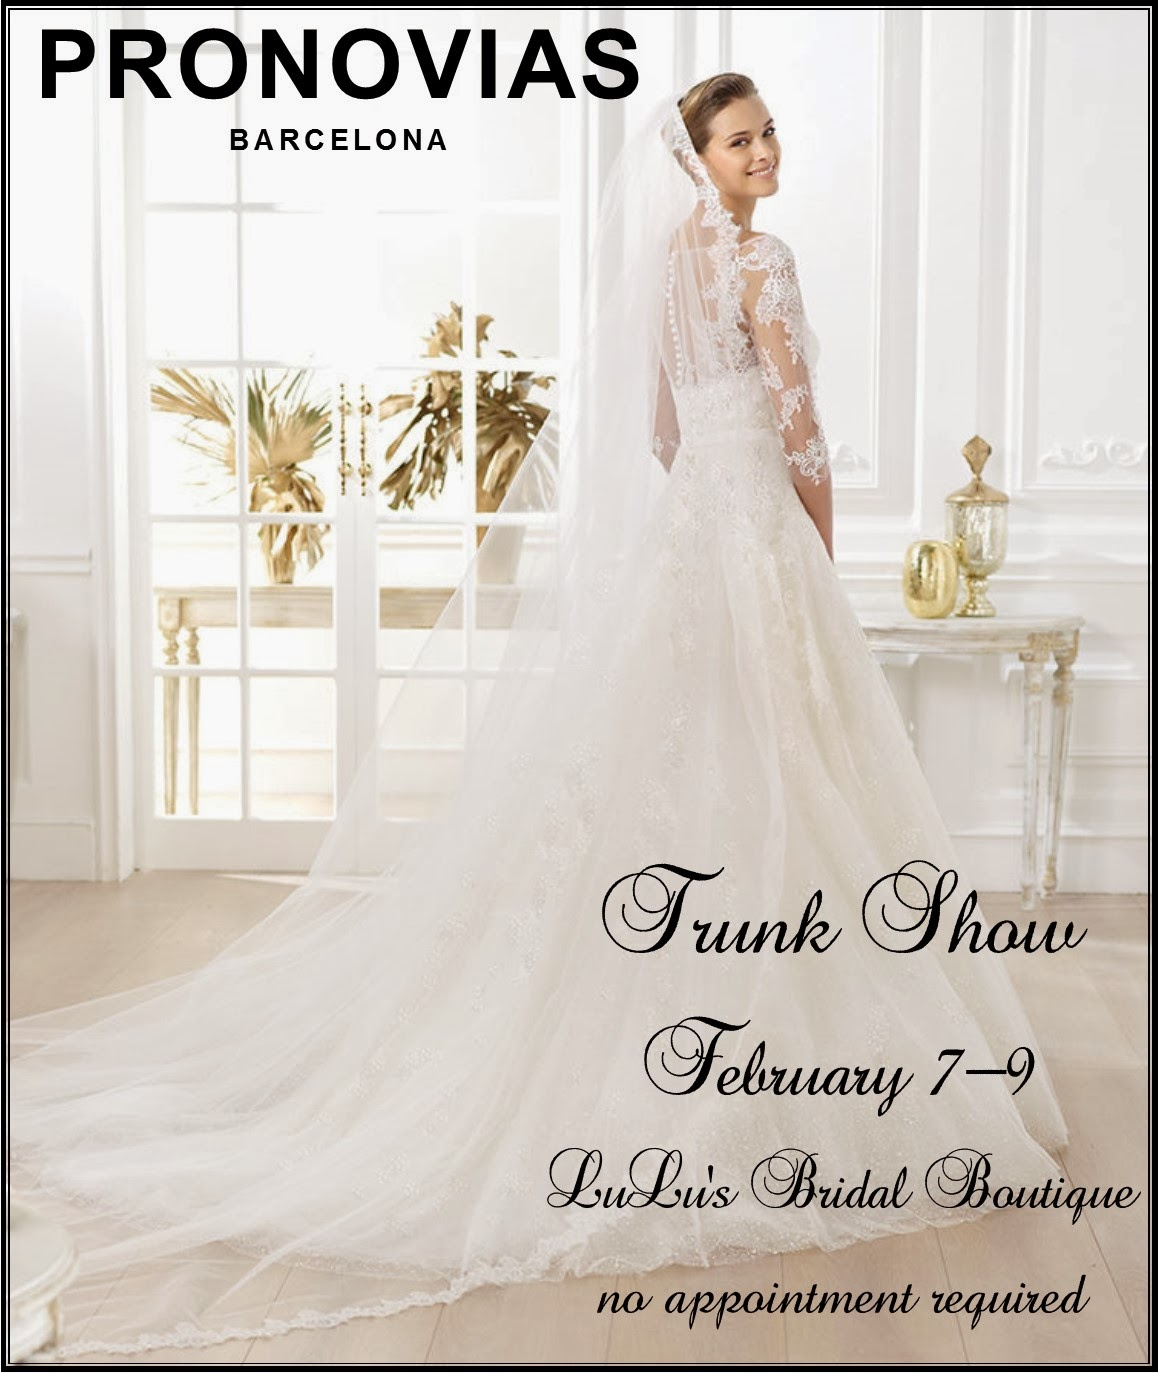 Preview the Latest Gorgeous Gowns from Alvina Valenta and Pronovias ...